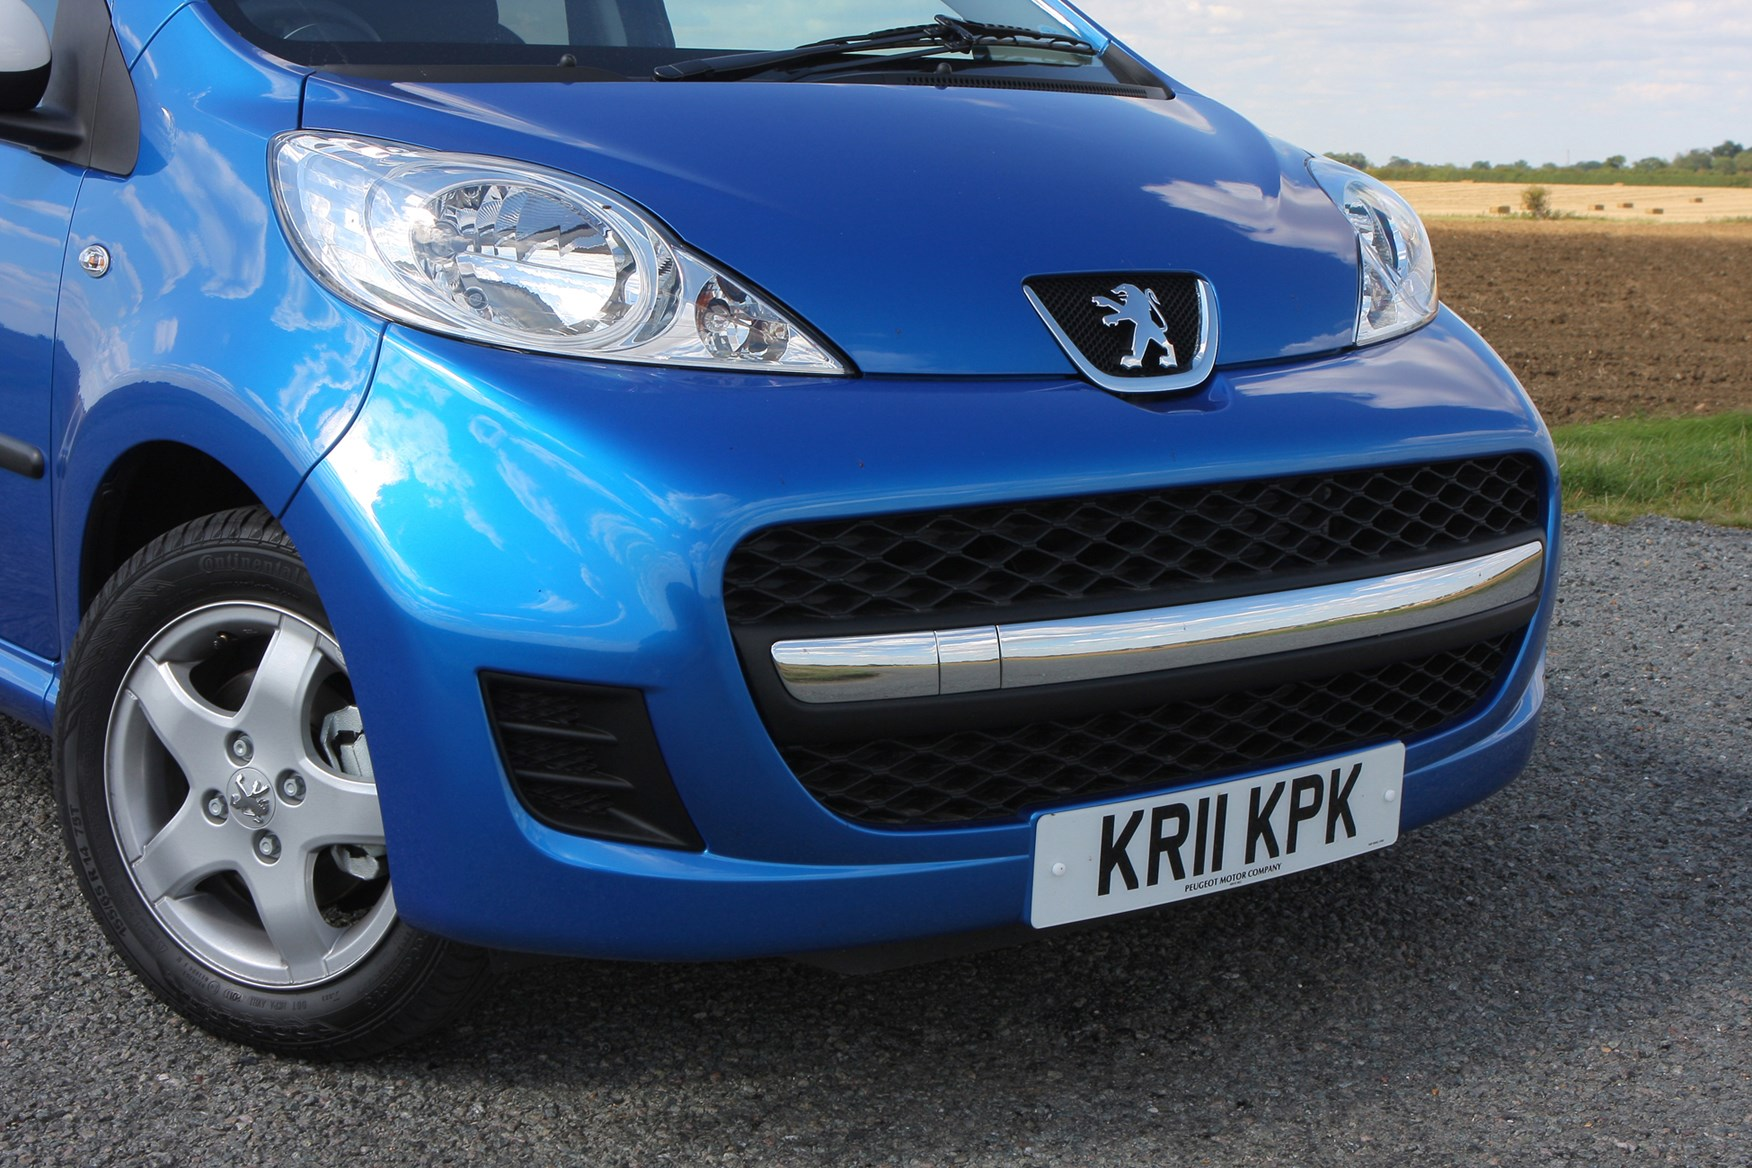 peugeot 107 hatchback 2005 2014 running costs parkers. Black Bedroom Furniture Sets. Home Design Ideas